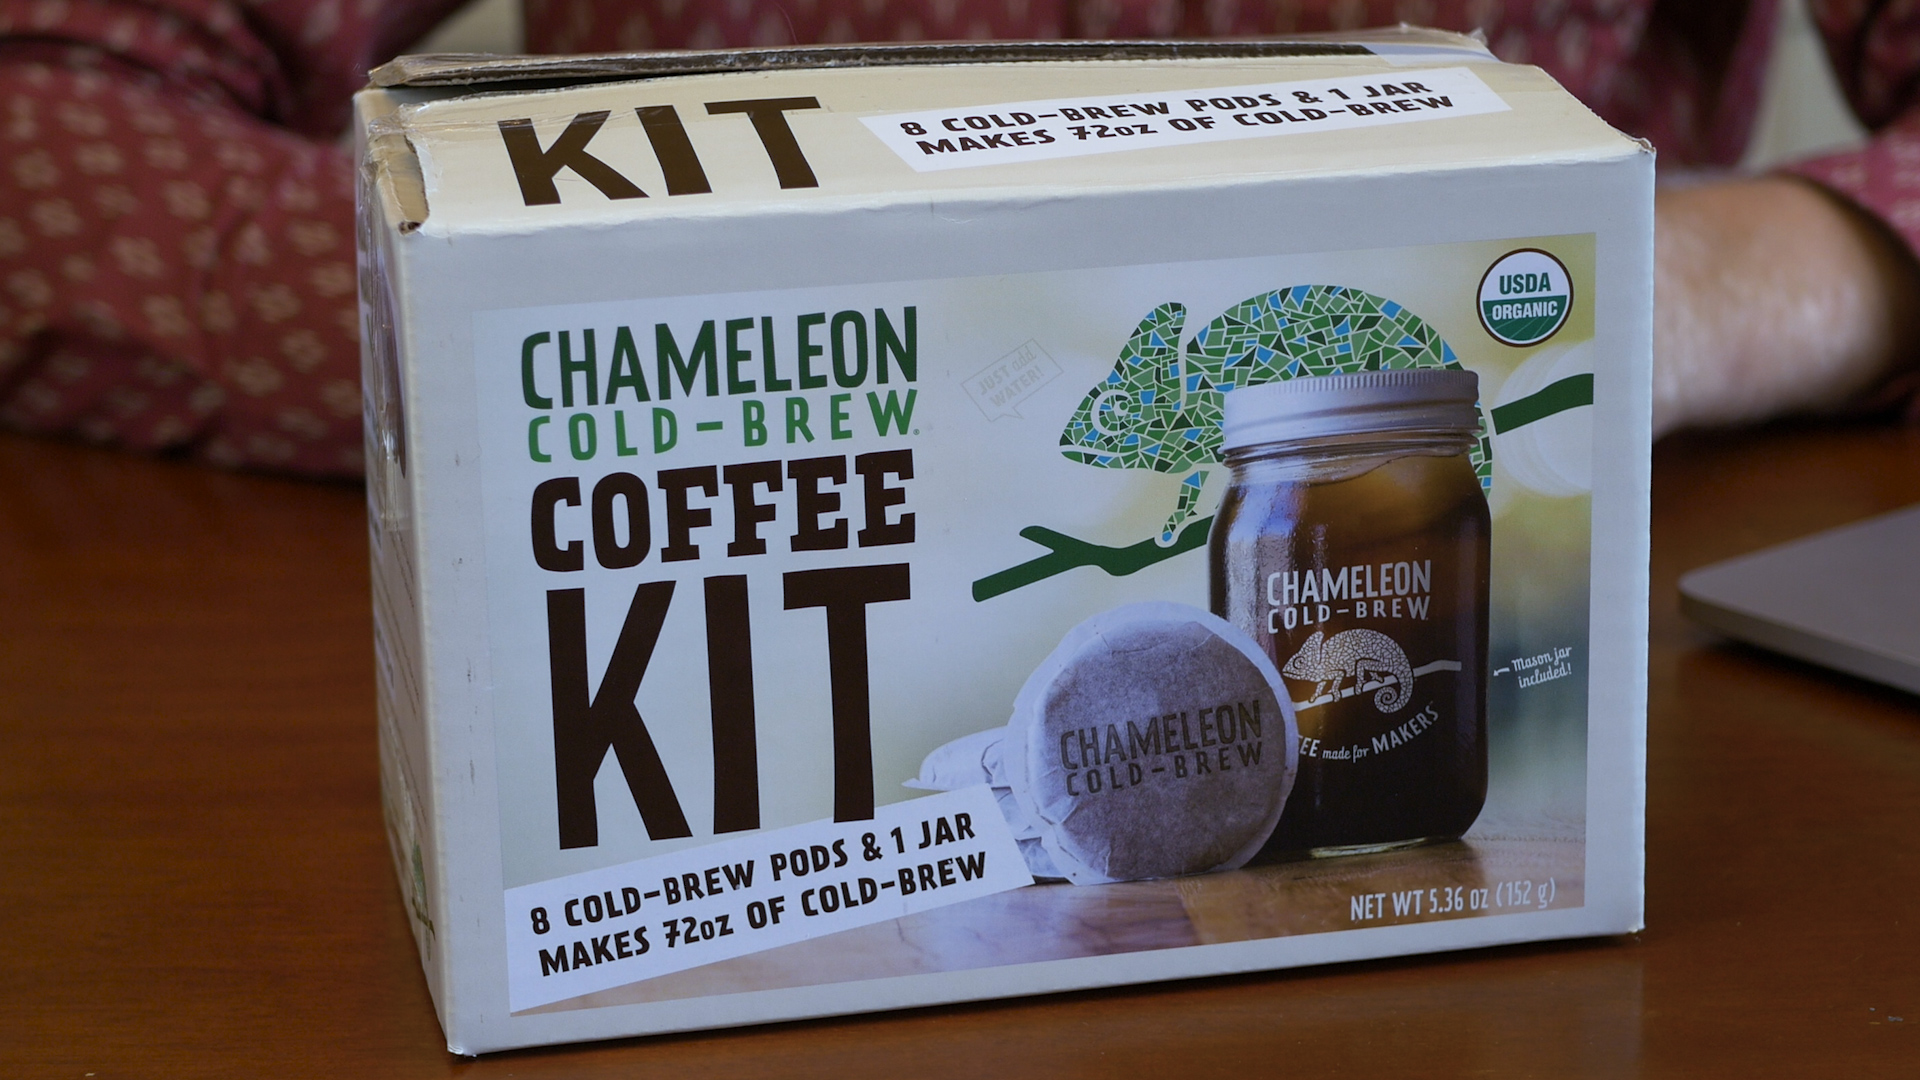 Photo of a Chameleon Cold-Brew Coffee Kit in a box